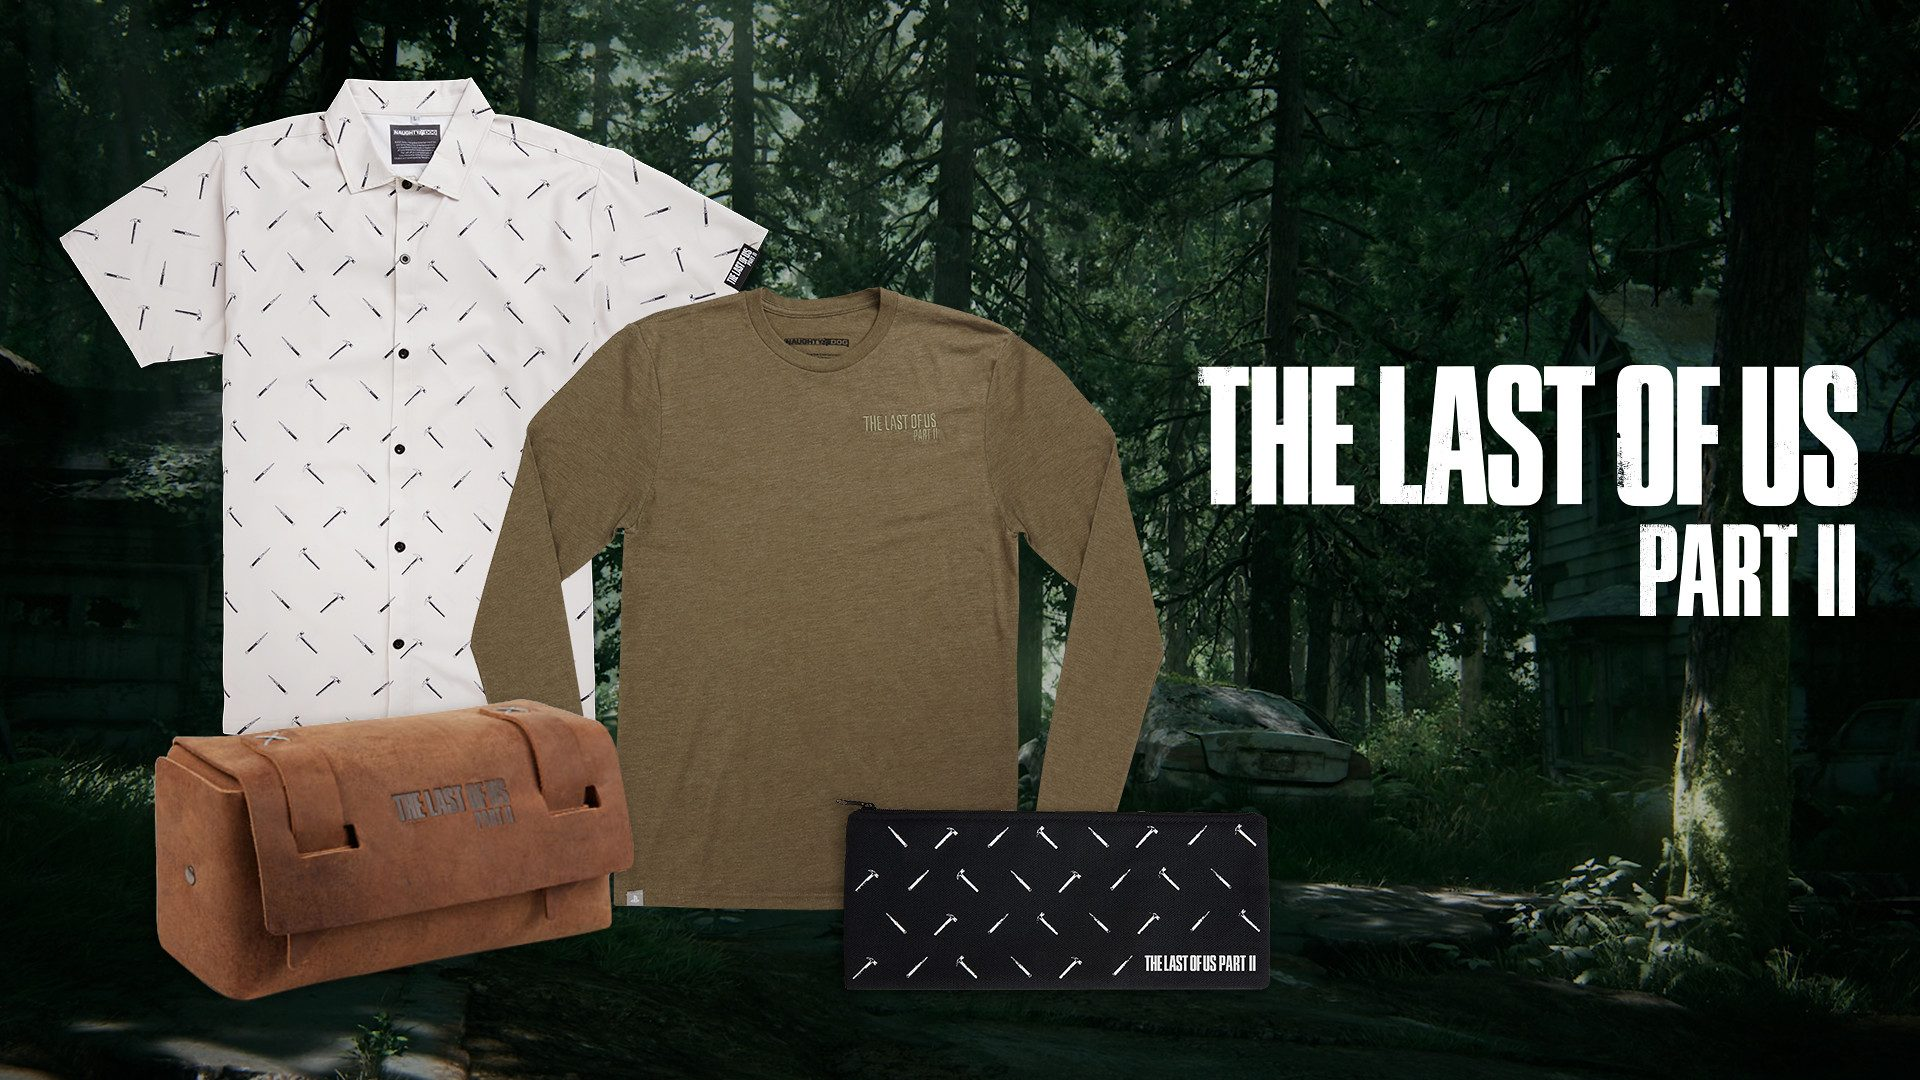 celebrate-the-last-of-us-part-ii's-first-anniversary-with-new-official-merchandise